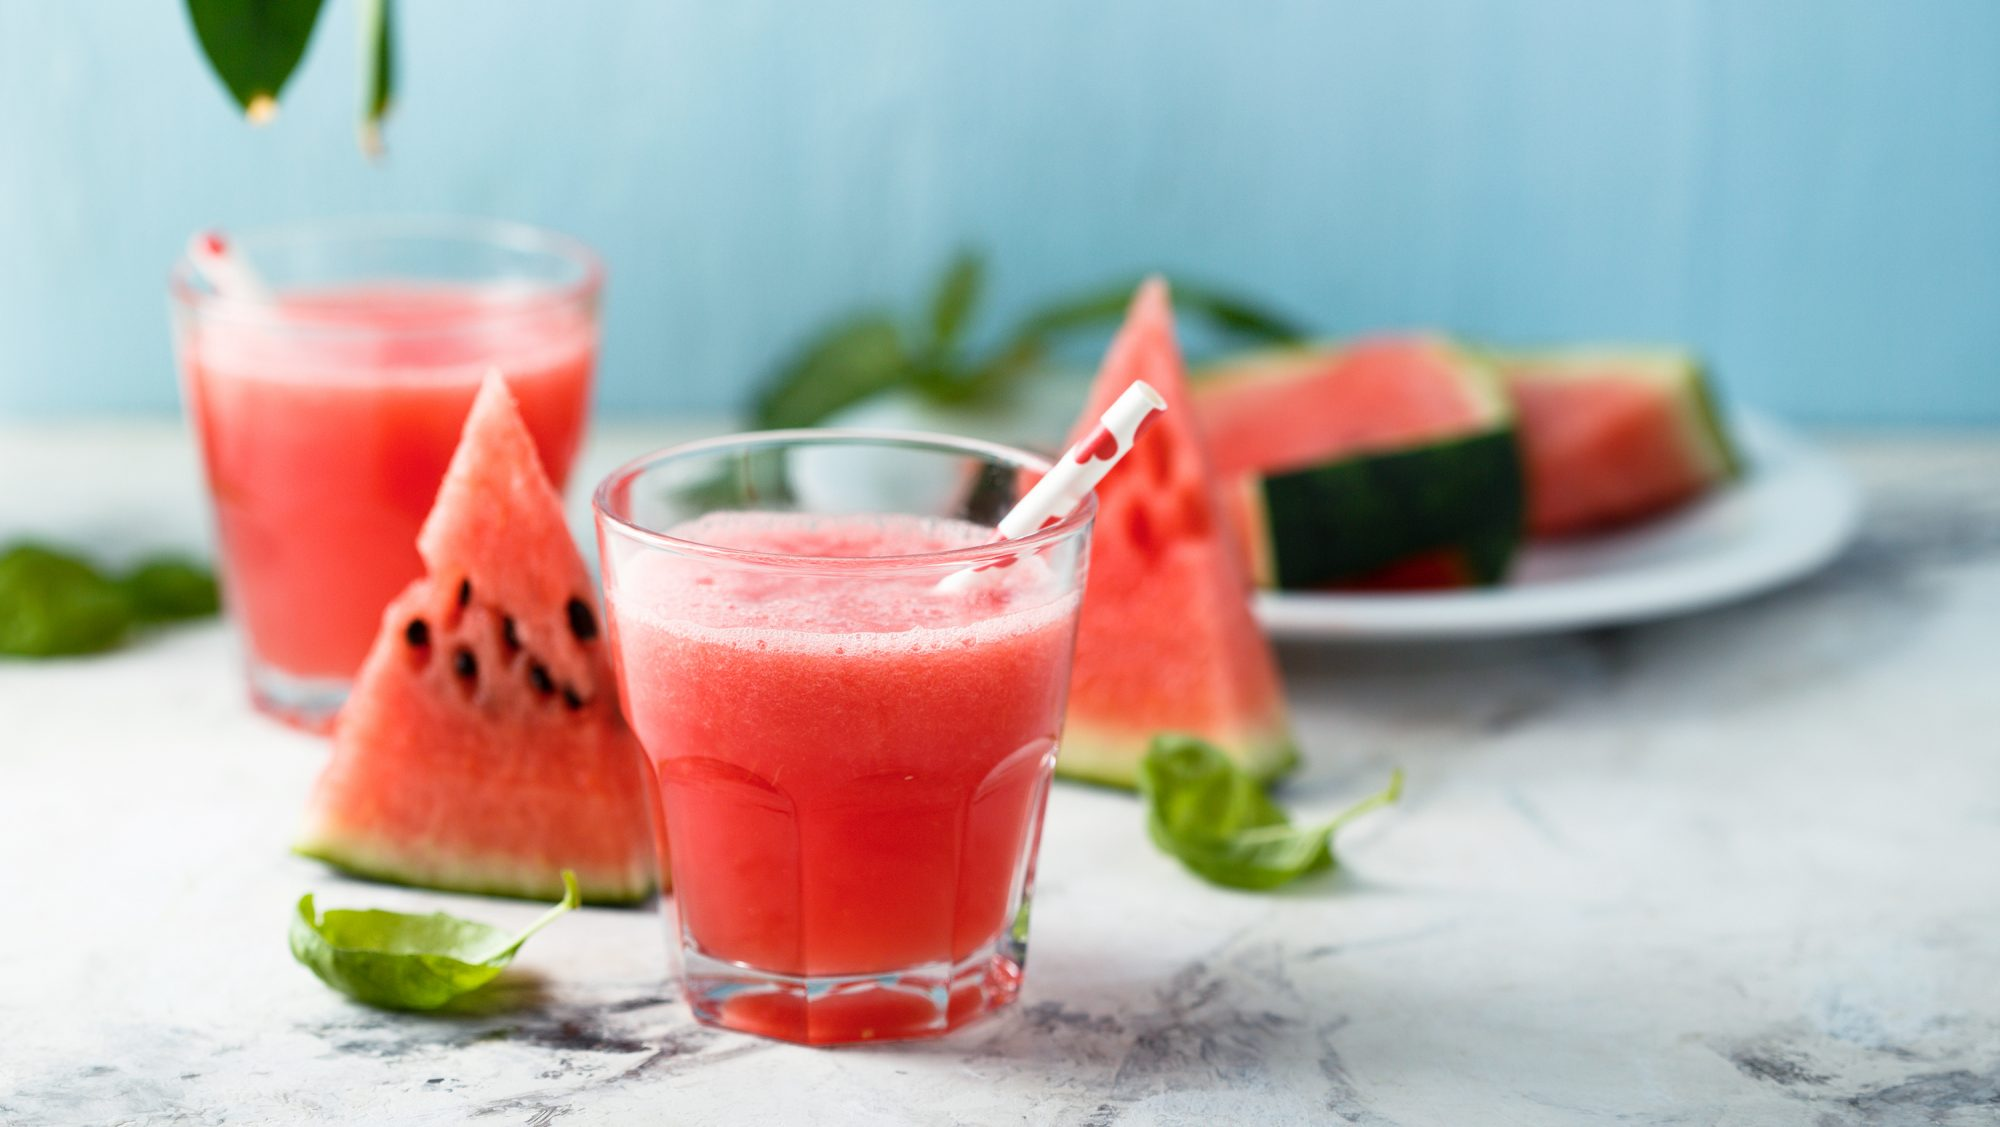 This Boozy Watermelon Slushie Will Keep You Cool All Summer Long